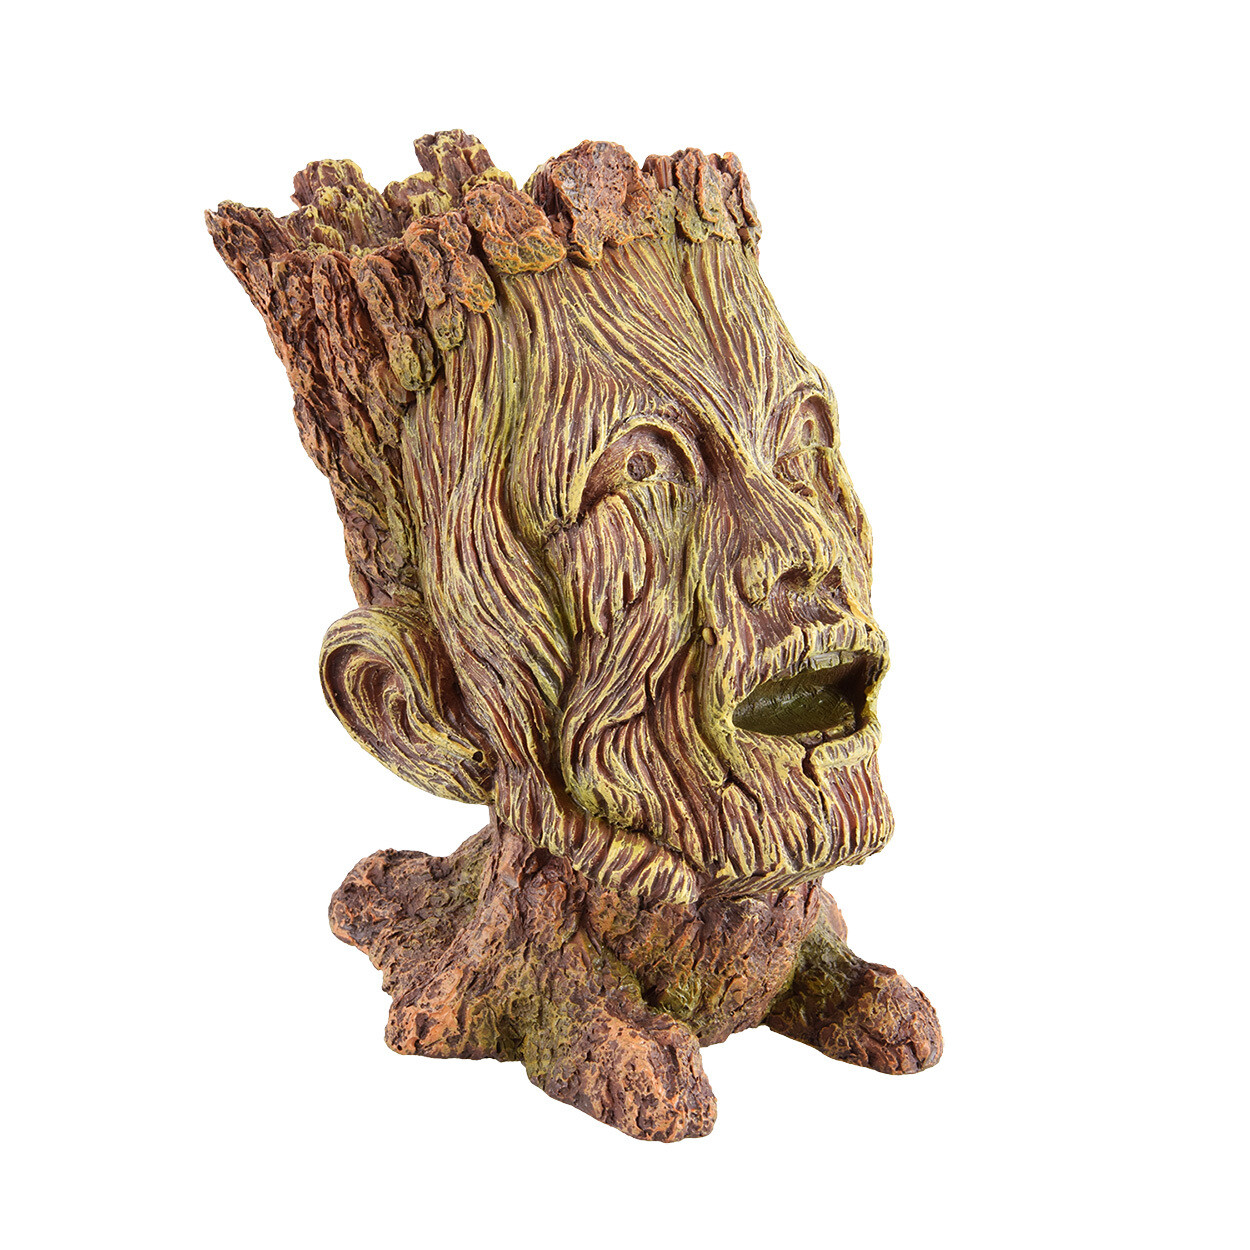 Underwater Treasures Wooden Warlock